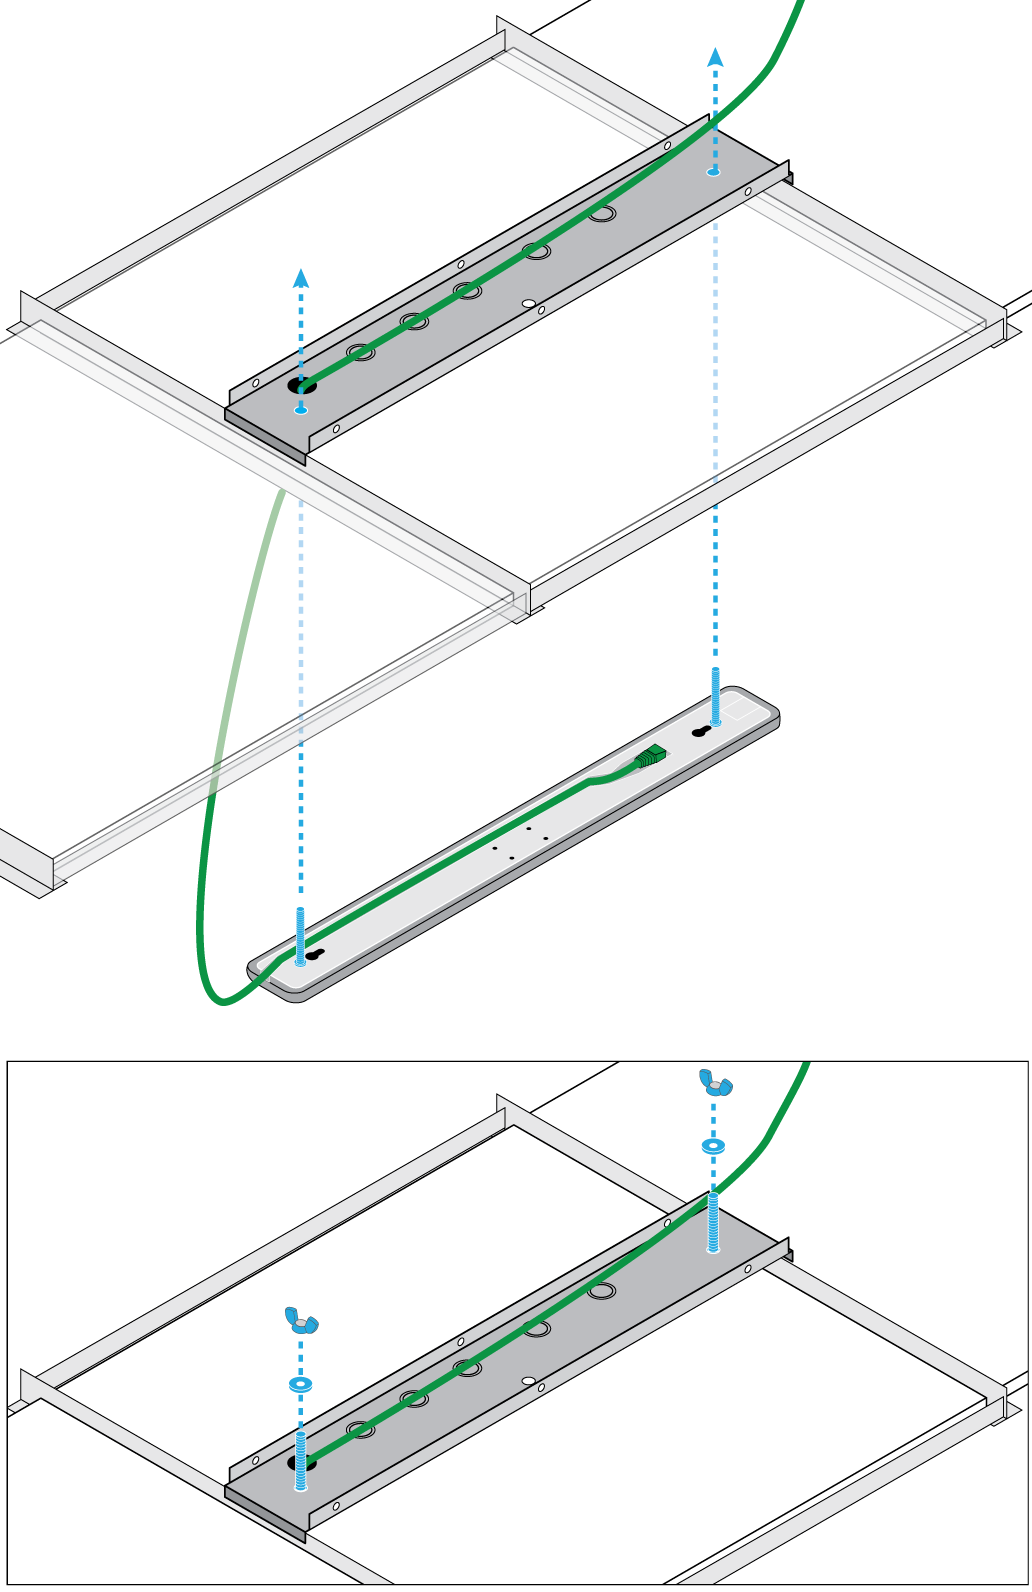 Illustration showing how to attach the MXA710-2FT to the A710-TB. Attach the 2 wing nuts to the bolts to secure the mic to the ceiling tile.